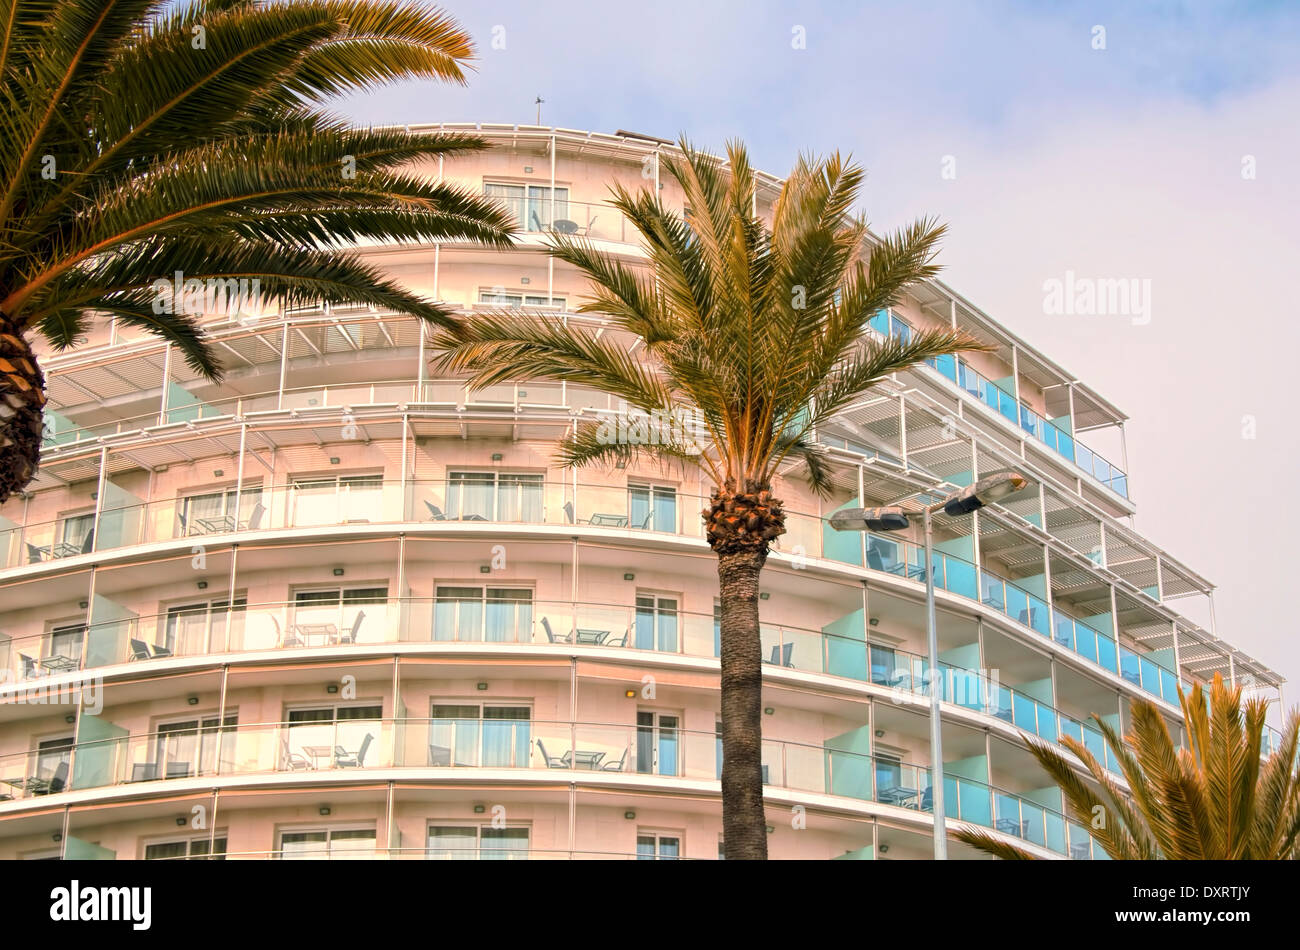 Outdoor View of Building in a Popular Holiday Resort on a Late Sunny Afternoon - Stock Image